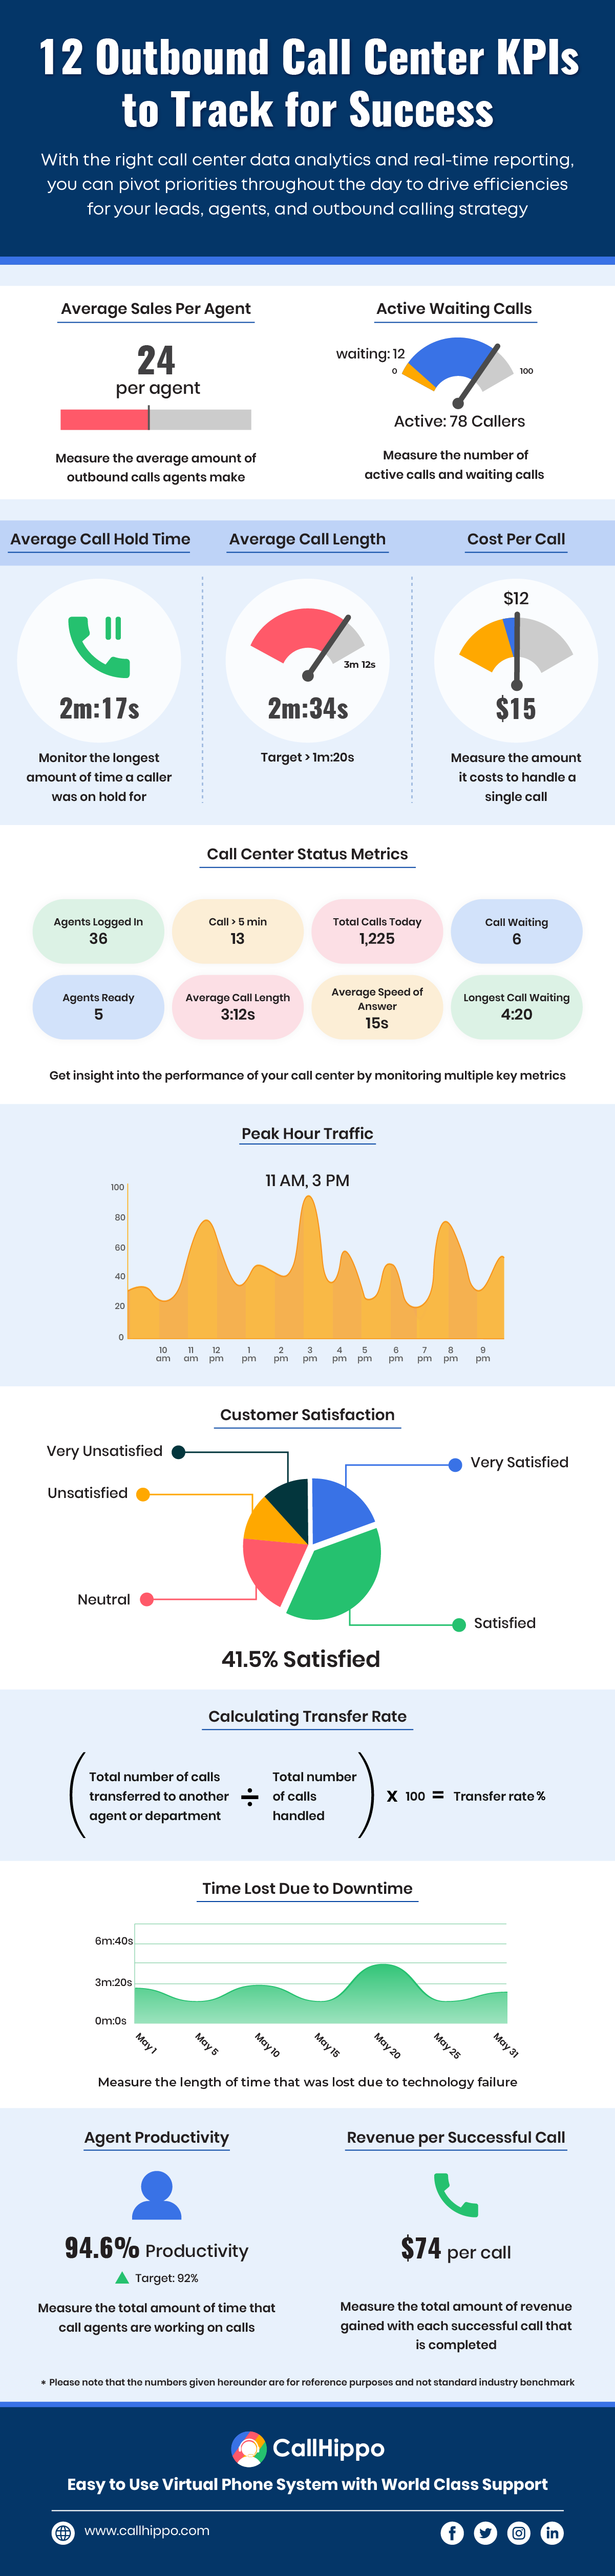 12 outbound call center KPIs successfully tracked_f